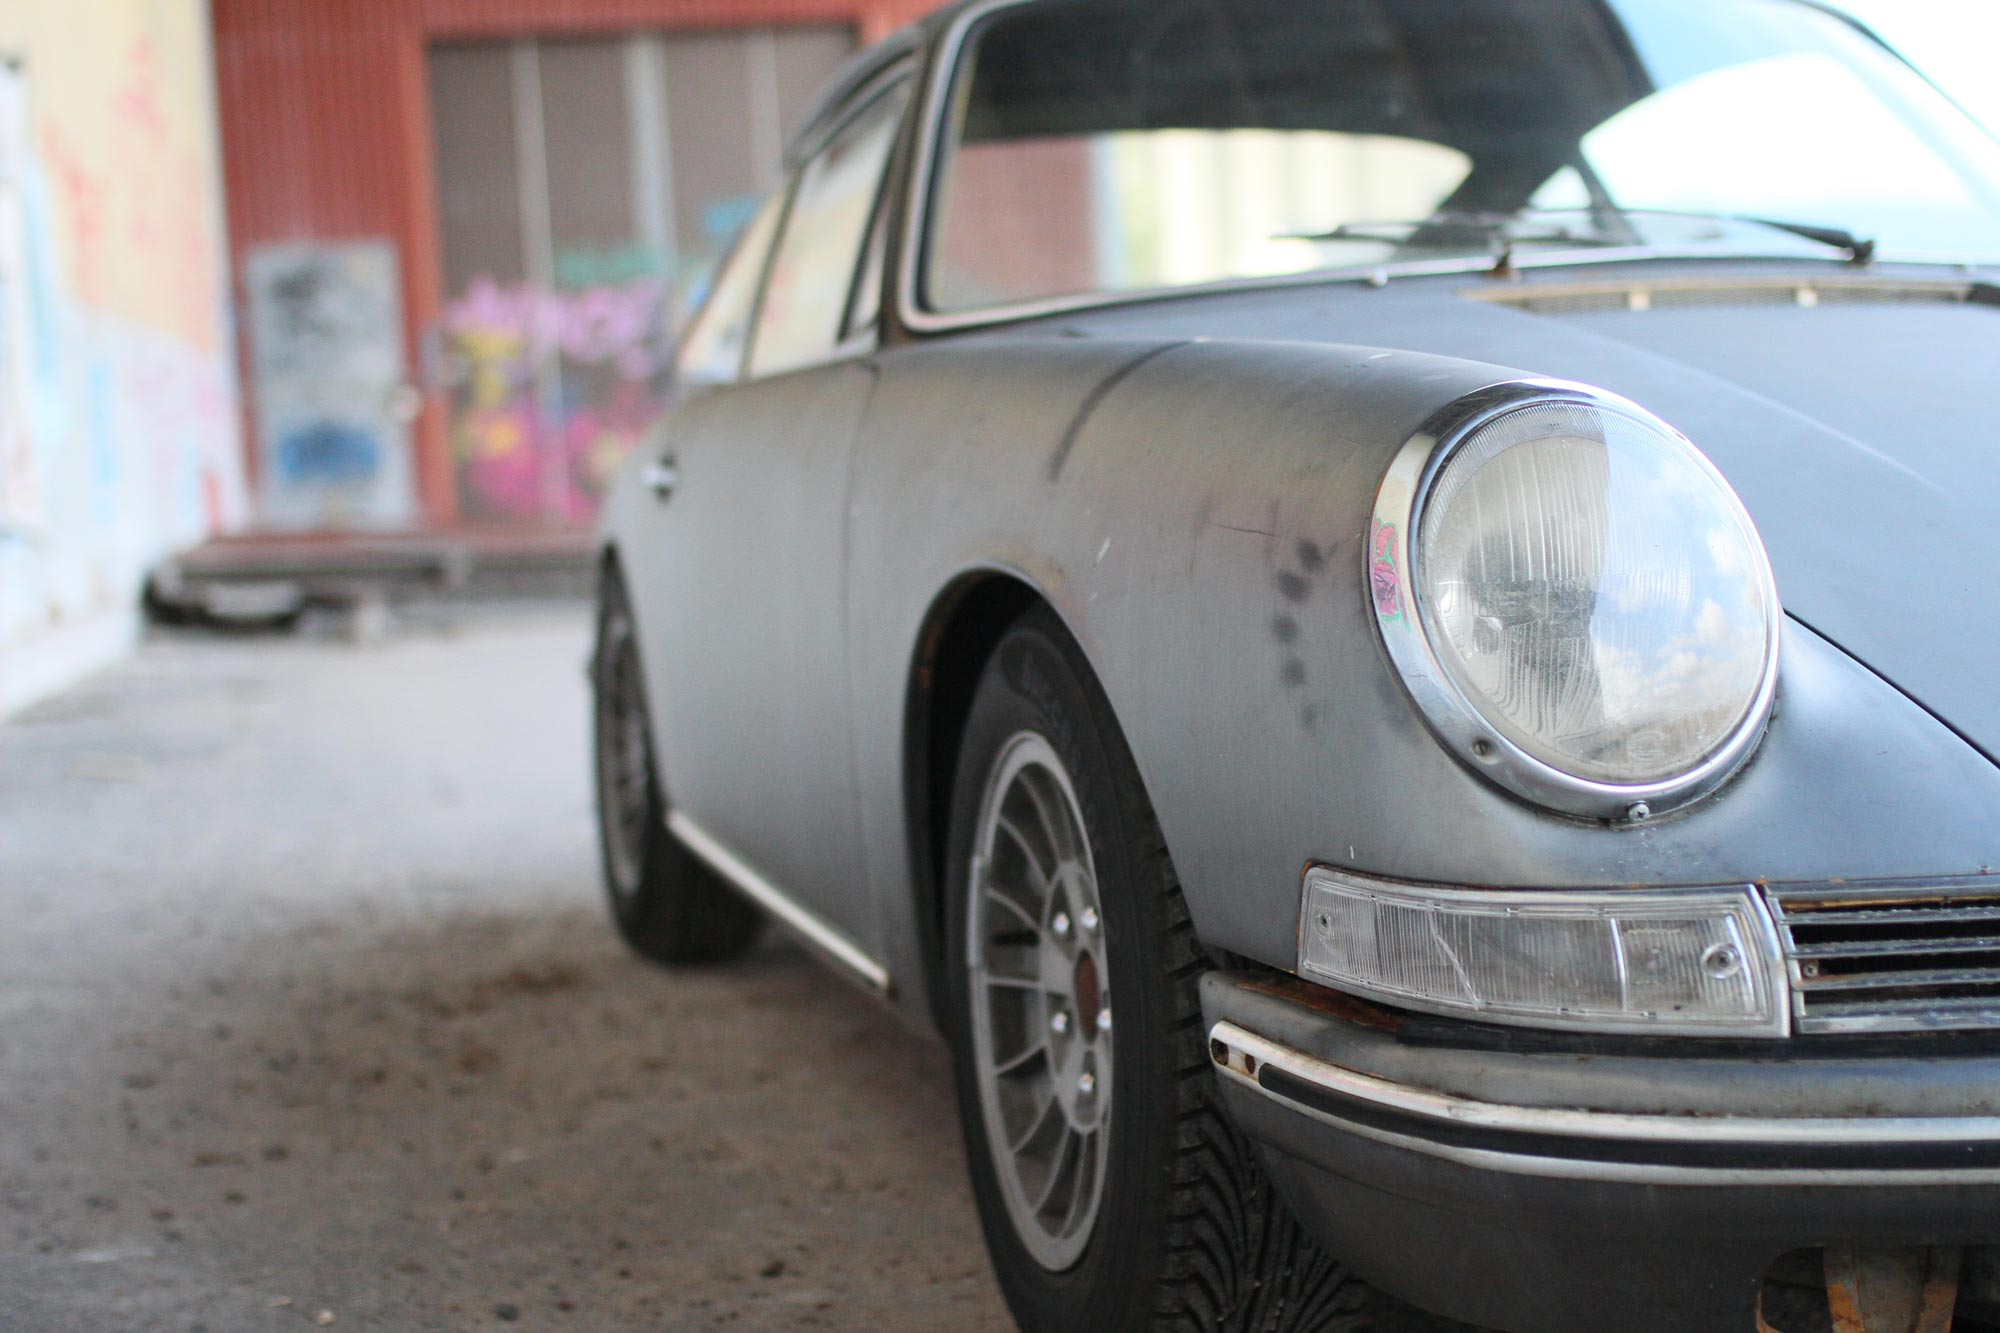 patina porsche and its headlights taken from the right side